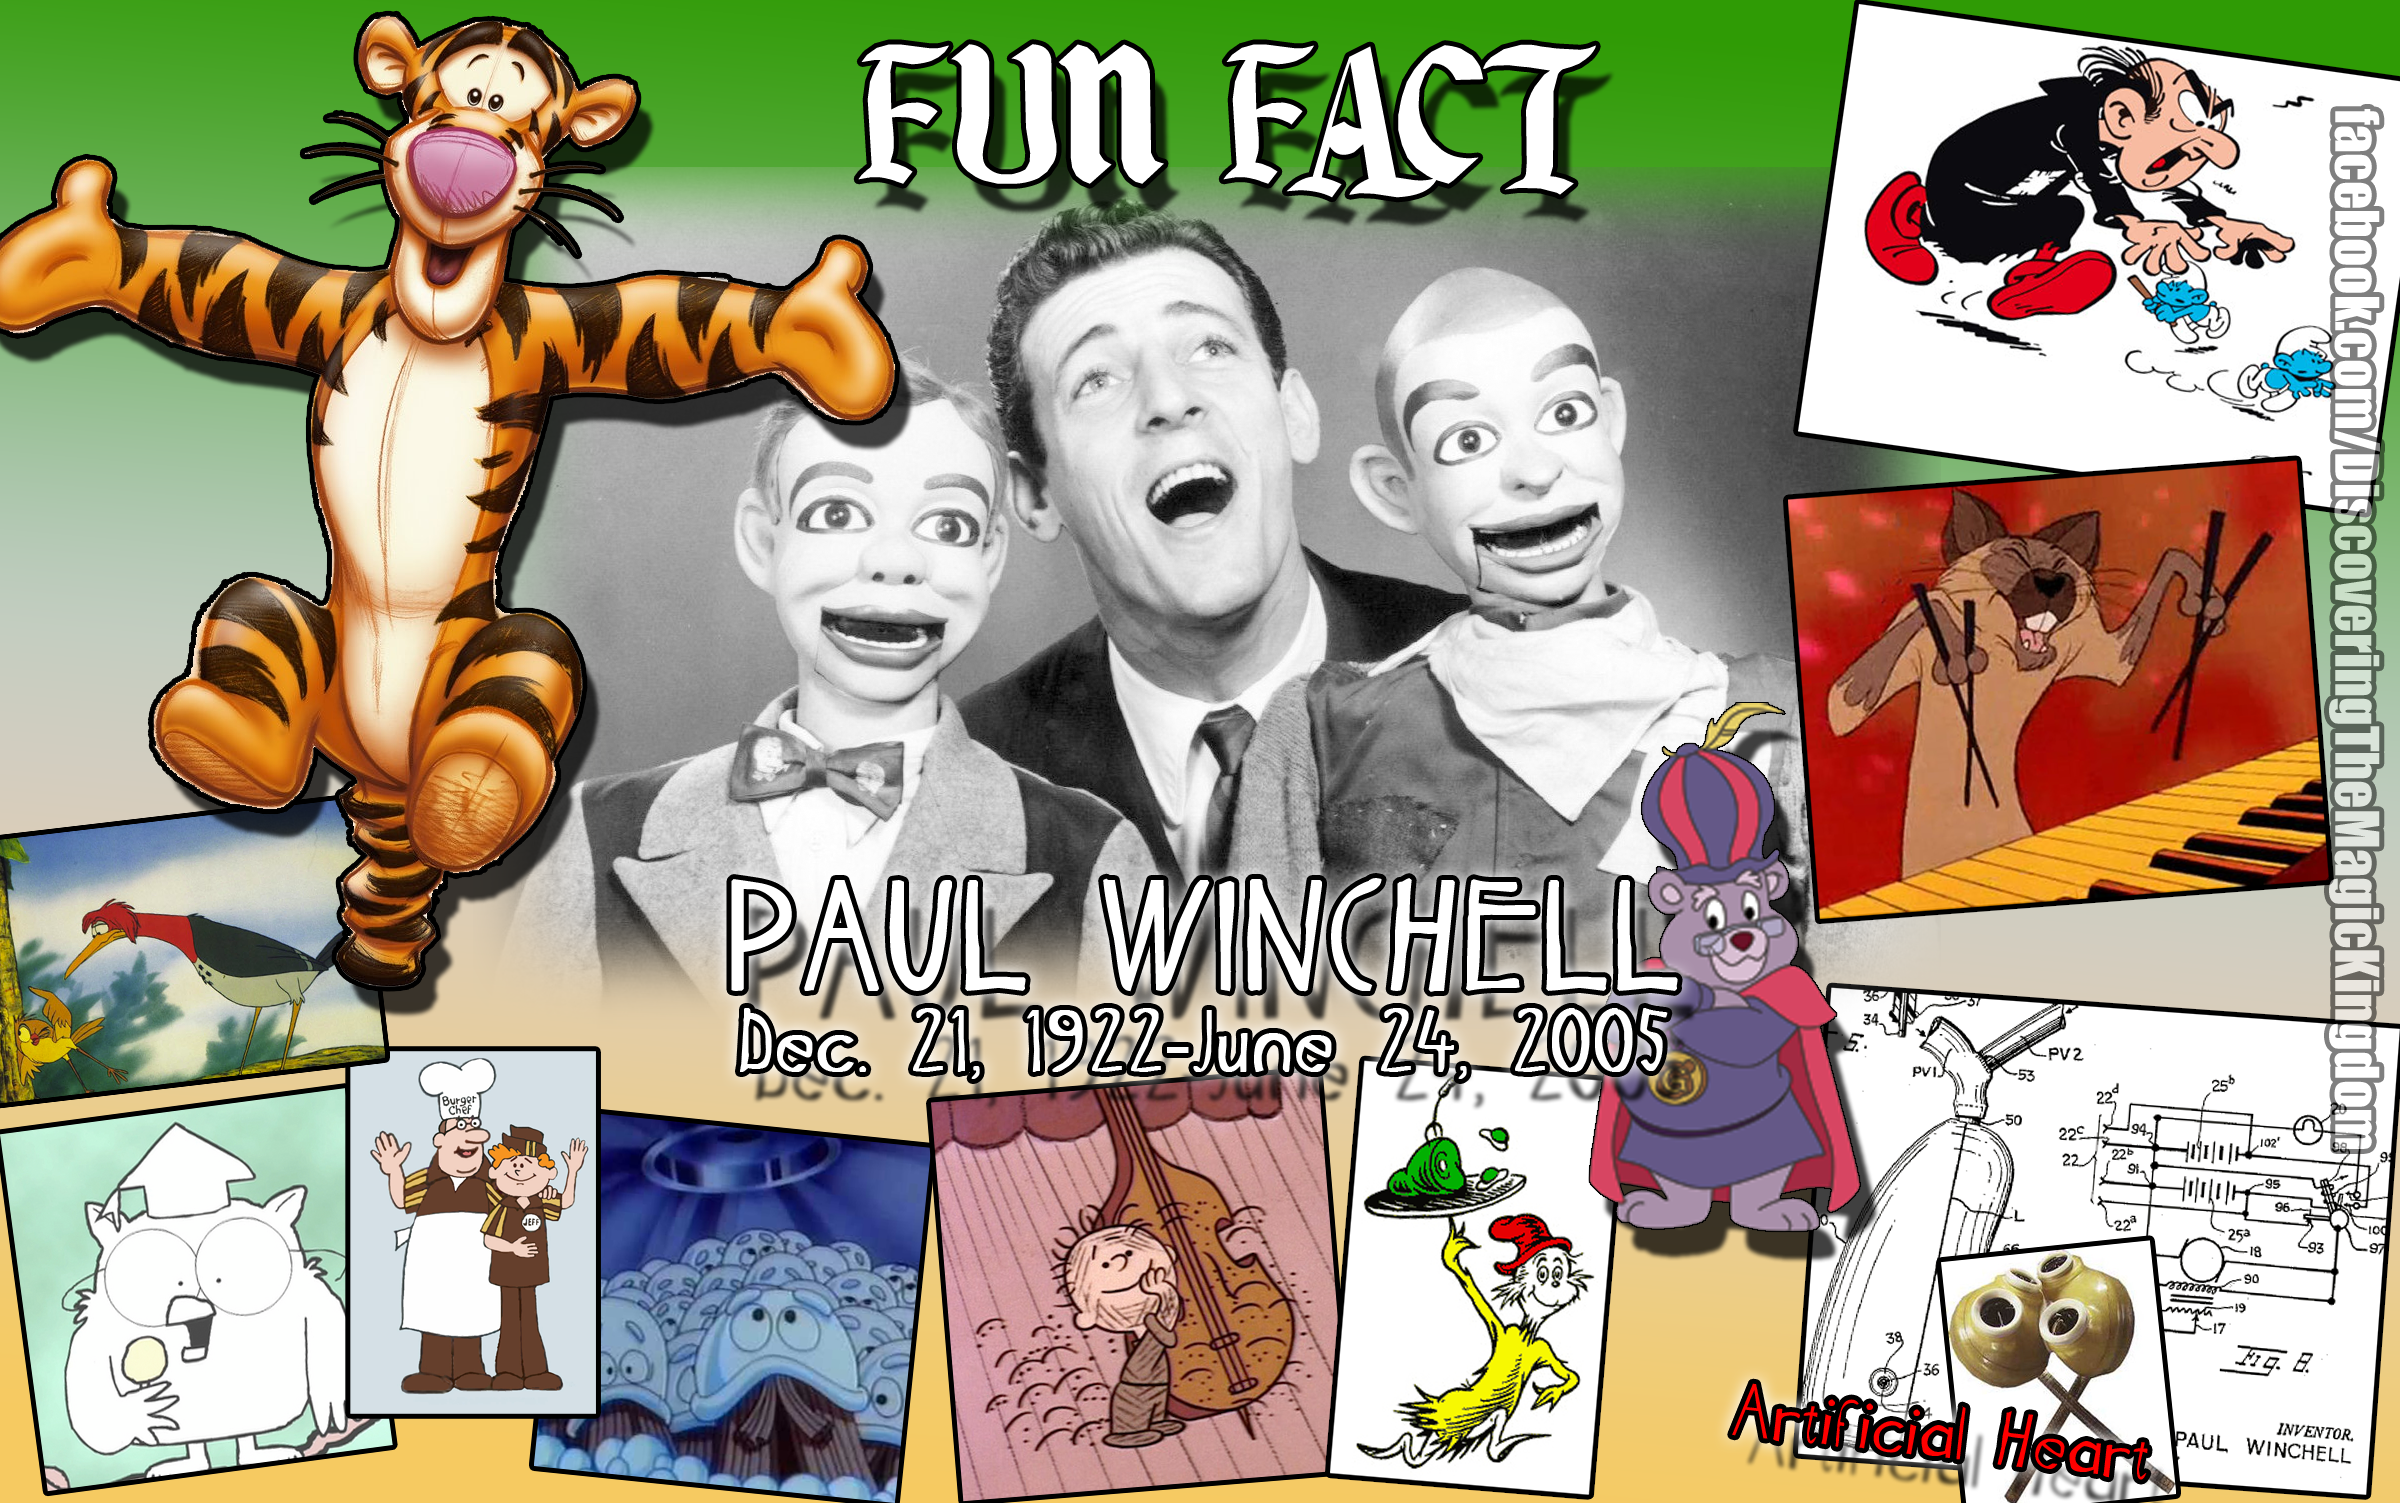 paul winchell and jerry mahoneypaul winchell and jerry mahoney, paul winchell imdb, paul winchell voices, paul winchell cause of death, paul winchell net worth, paul winchell brady bunch, paul winchell biography, paul winchell heart, paul winchell movies, paul winchell death, paul winchell what my line, paul winchell bio, paul winchell behind the voice actors, paul winchell grave, paul winchell doing tigger, paul winchell twilight zone, paul winchell book, paul winchell height, paul winchell autobiography, paul winchell daughter